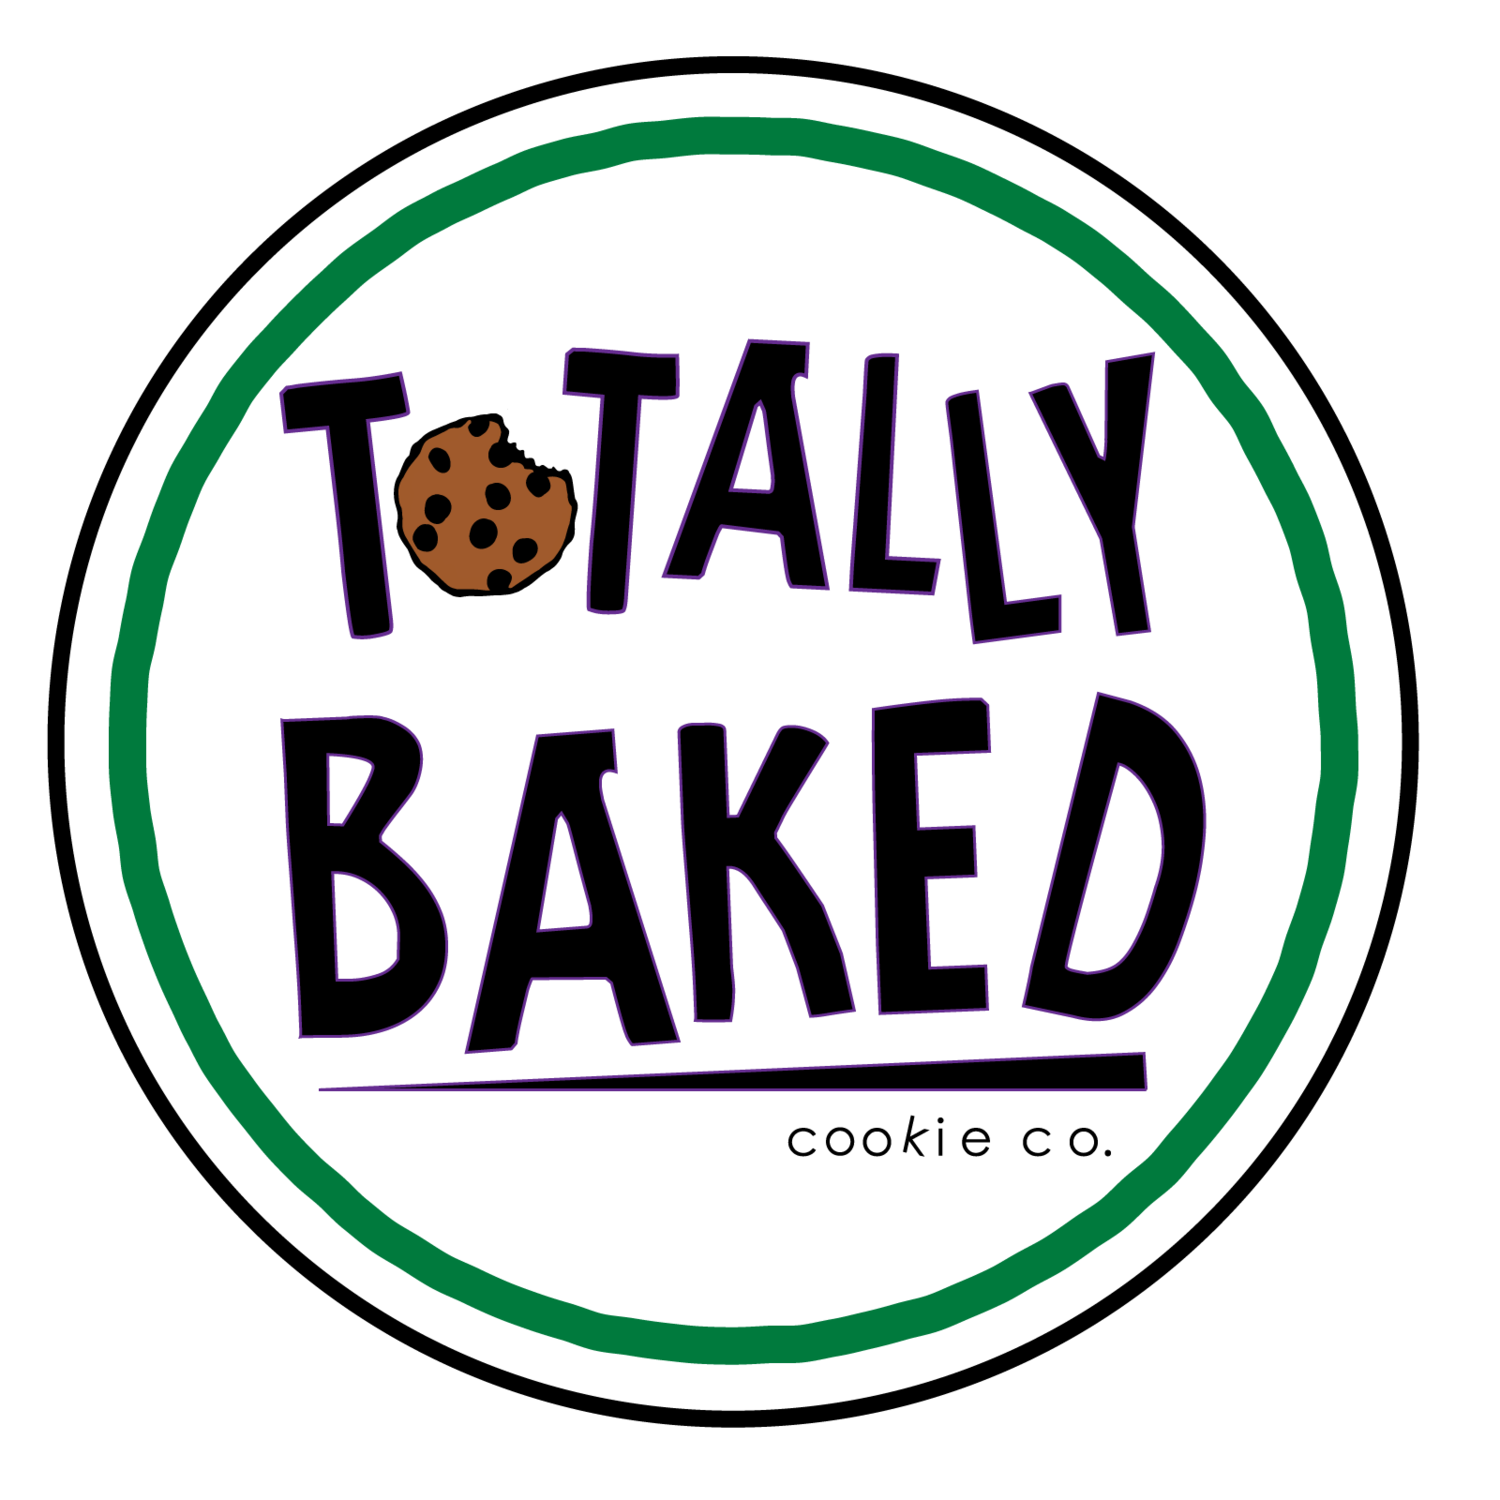 Totally Baked Cookie Co.